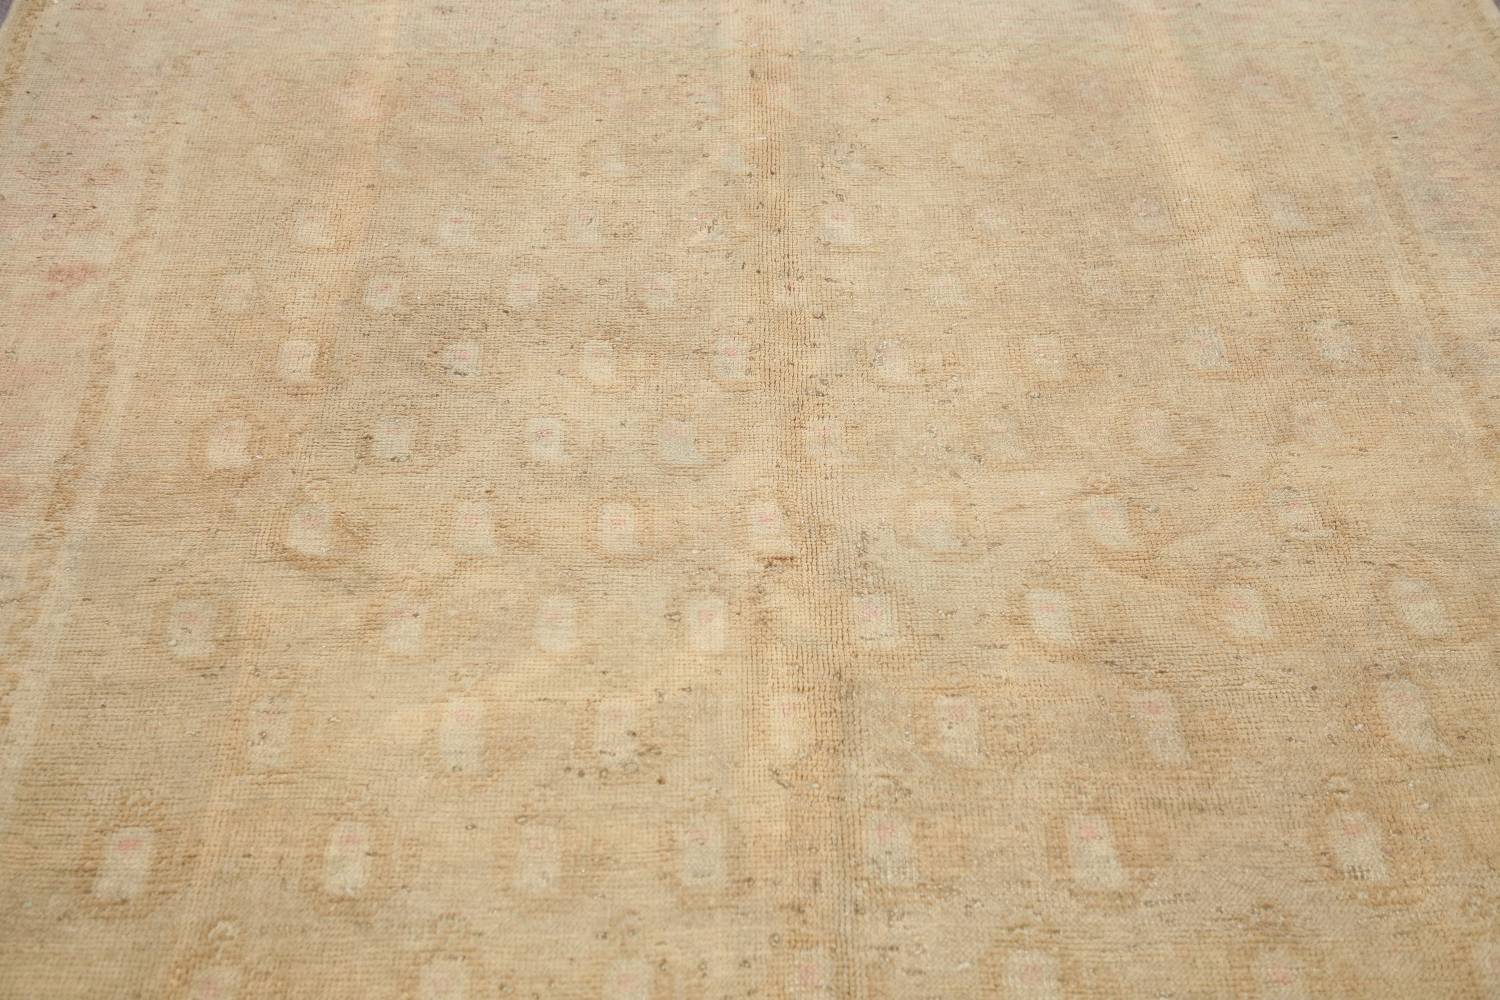 Antique Muted Gold Distressed Sarouk Persian Wool Rug 5x8 image 12